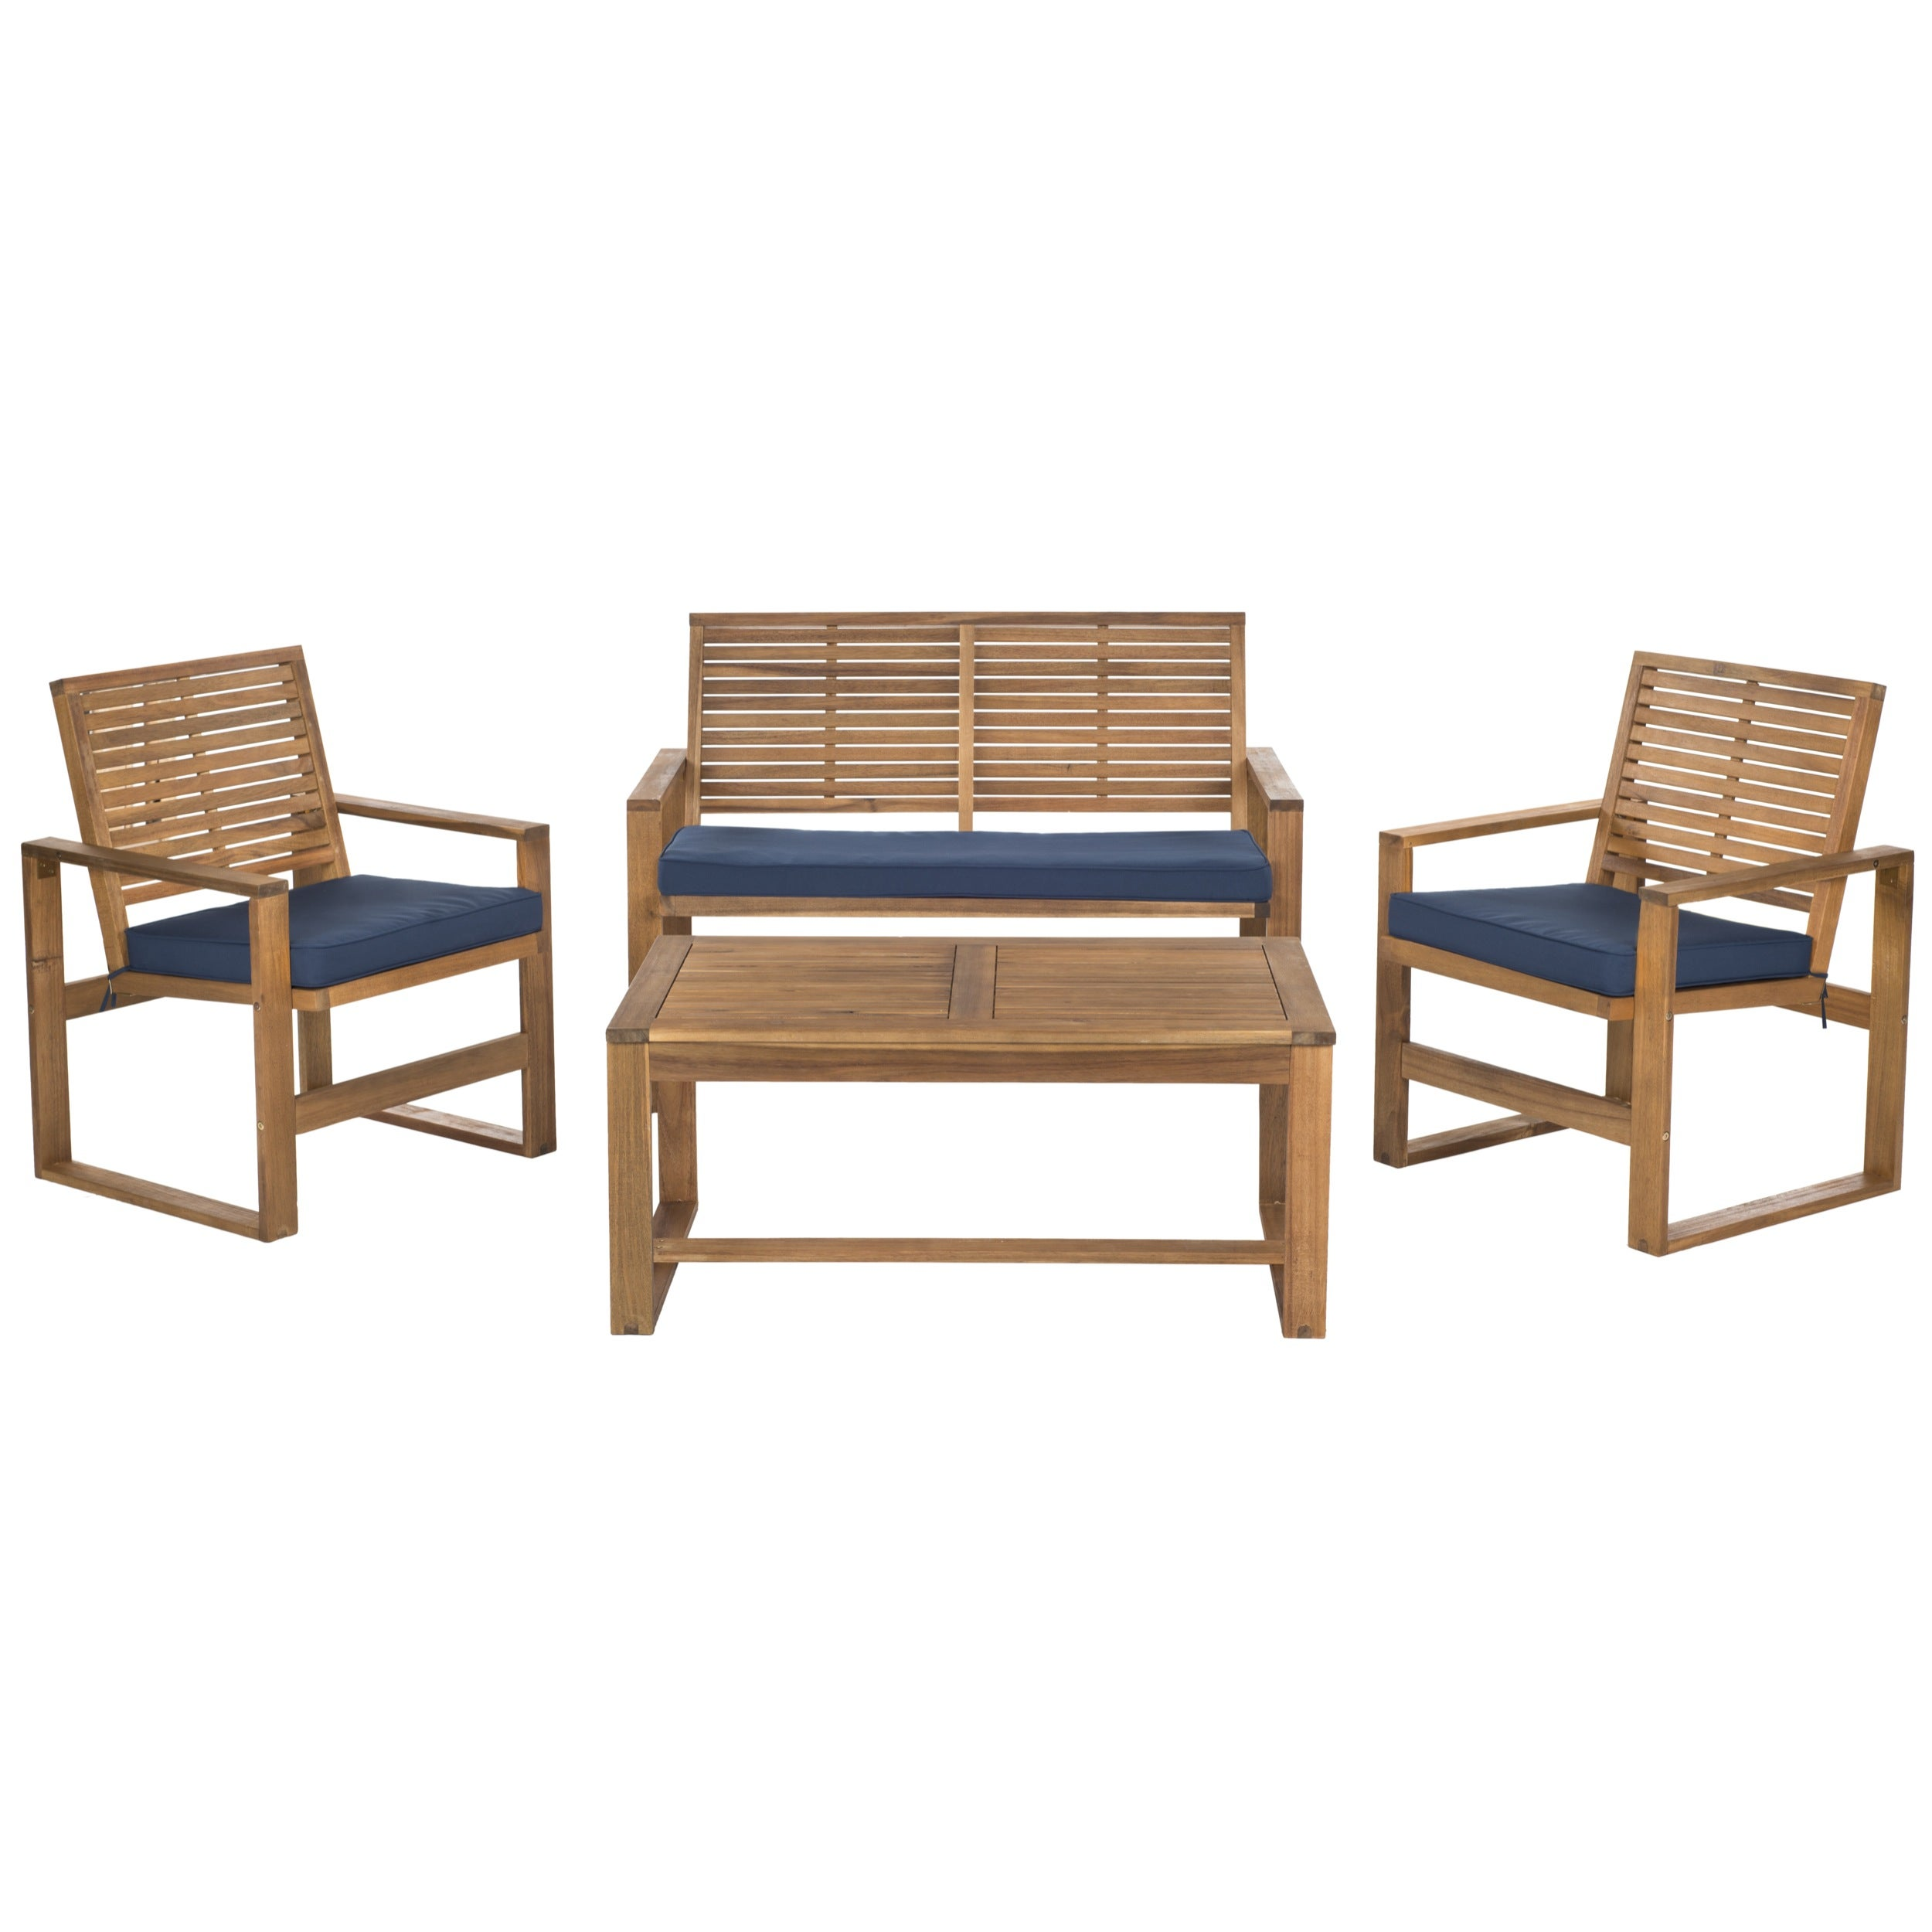 Safavieh Outdoor Living Ozark Brown/ Navy Acacia Wood 4-piece Patio Set